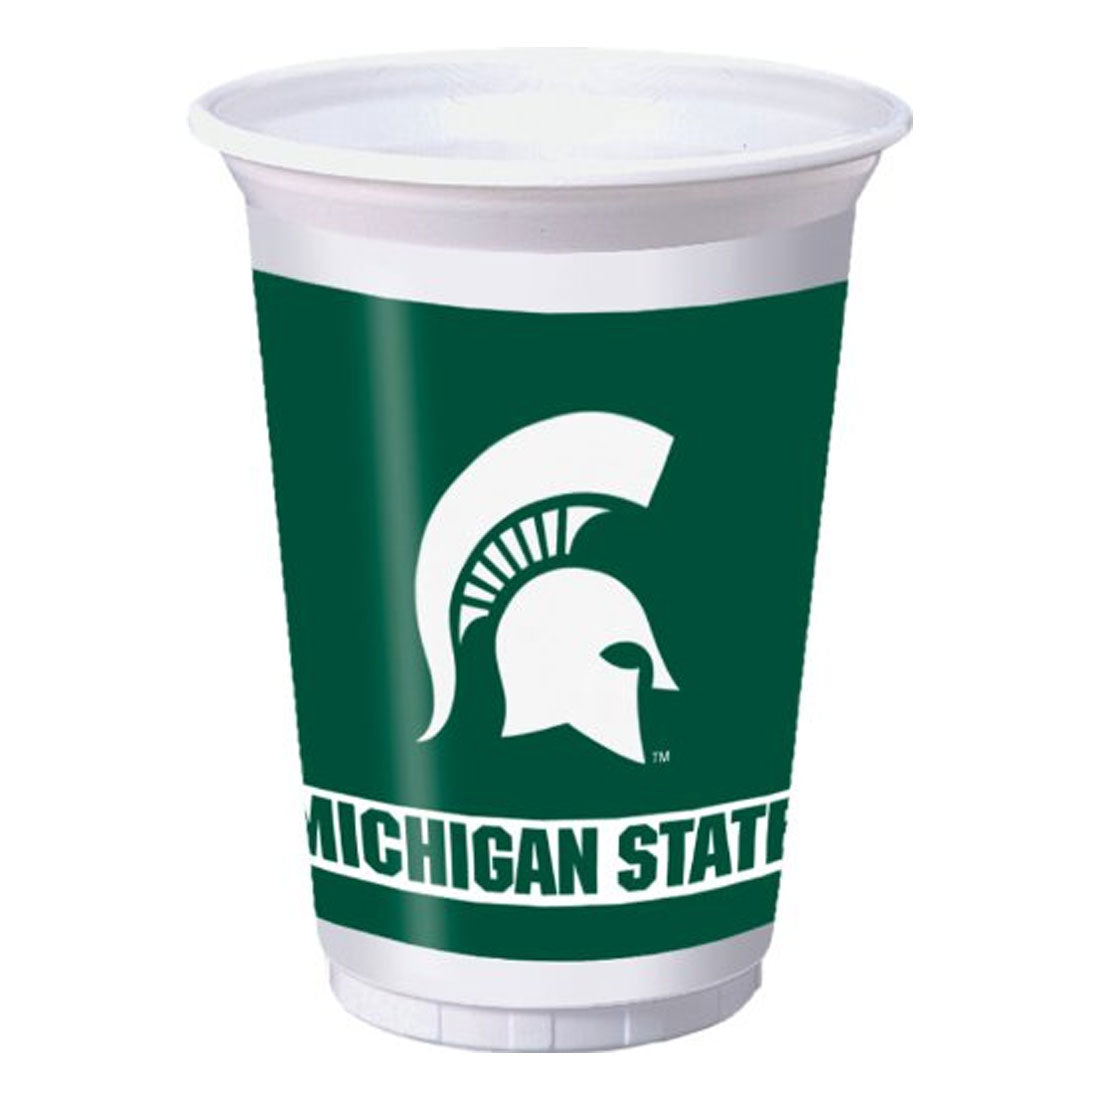 20 oz Printed Plastic Cups Michigan State Univ